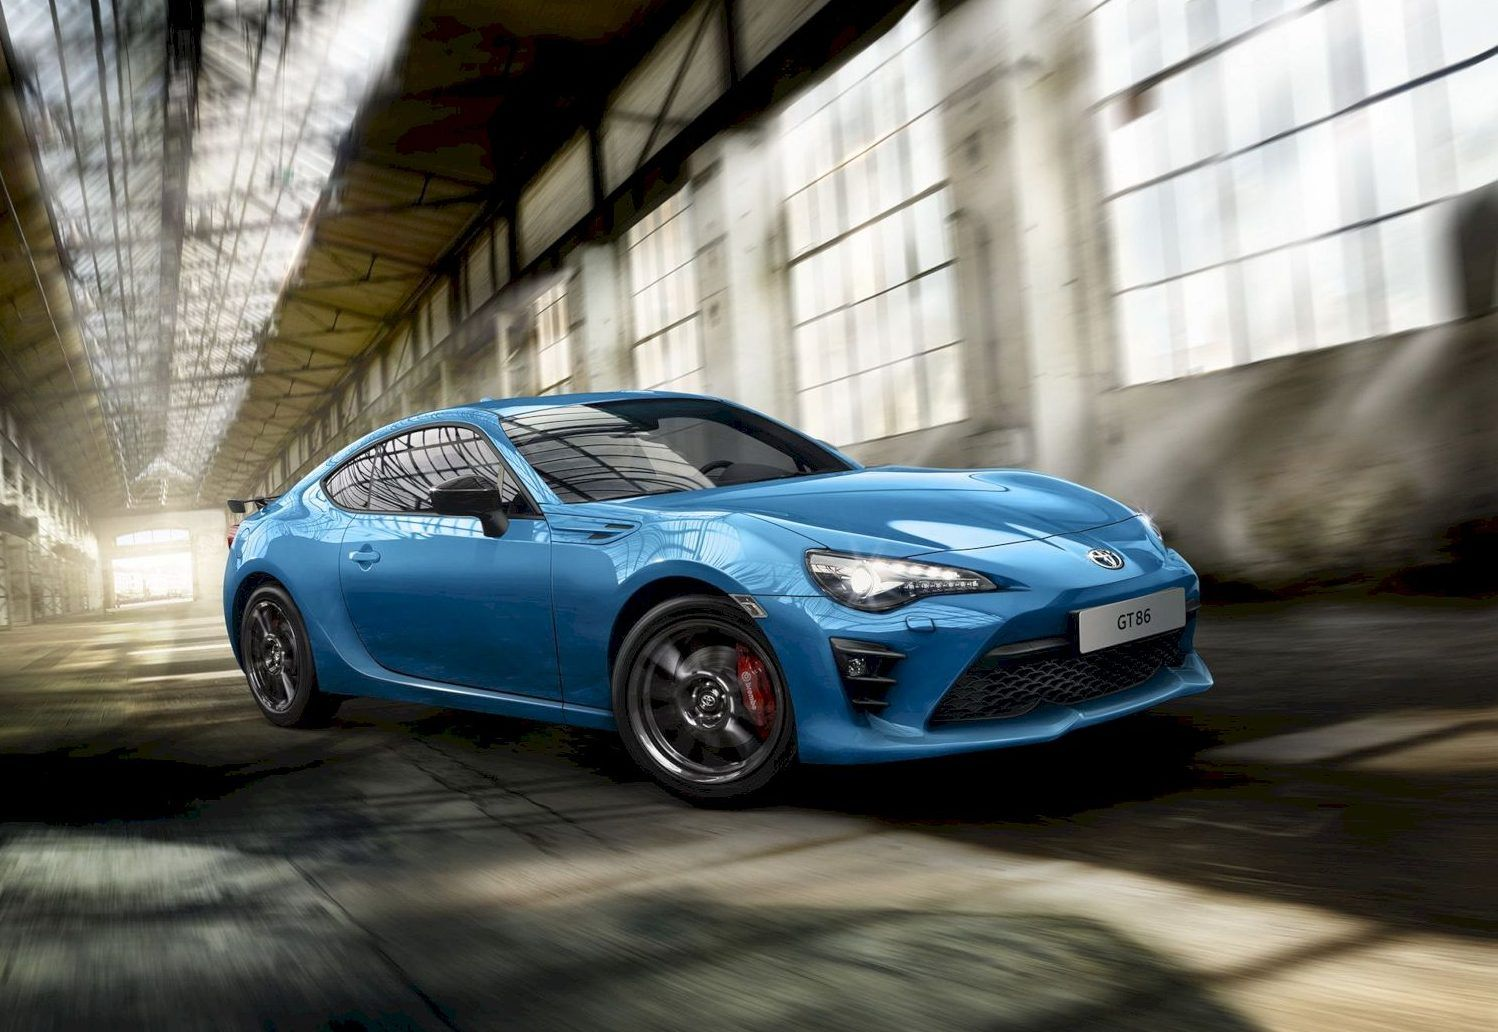 Toyota GT86 Club Series Blue Edition All about The Pure